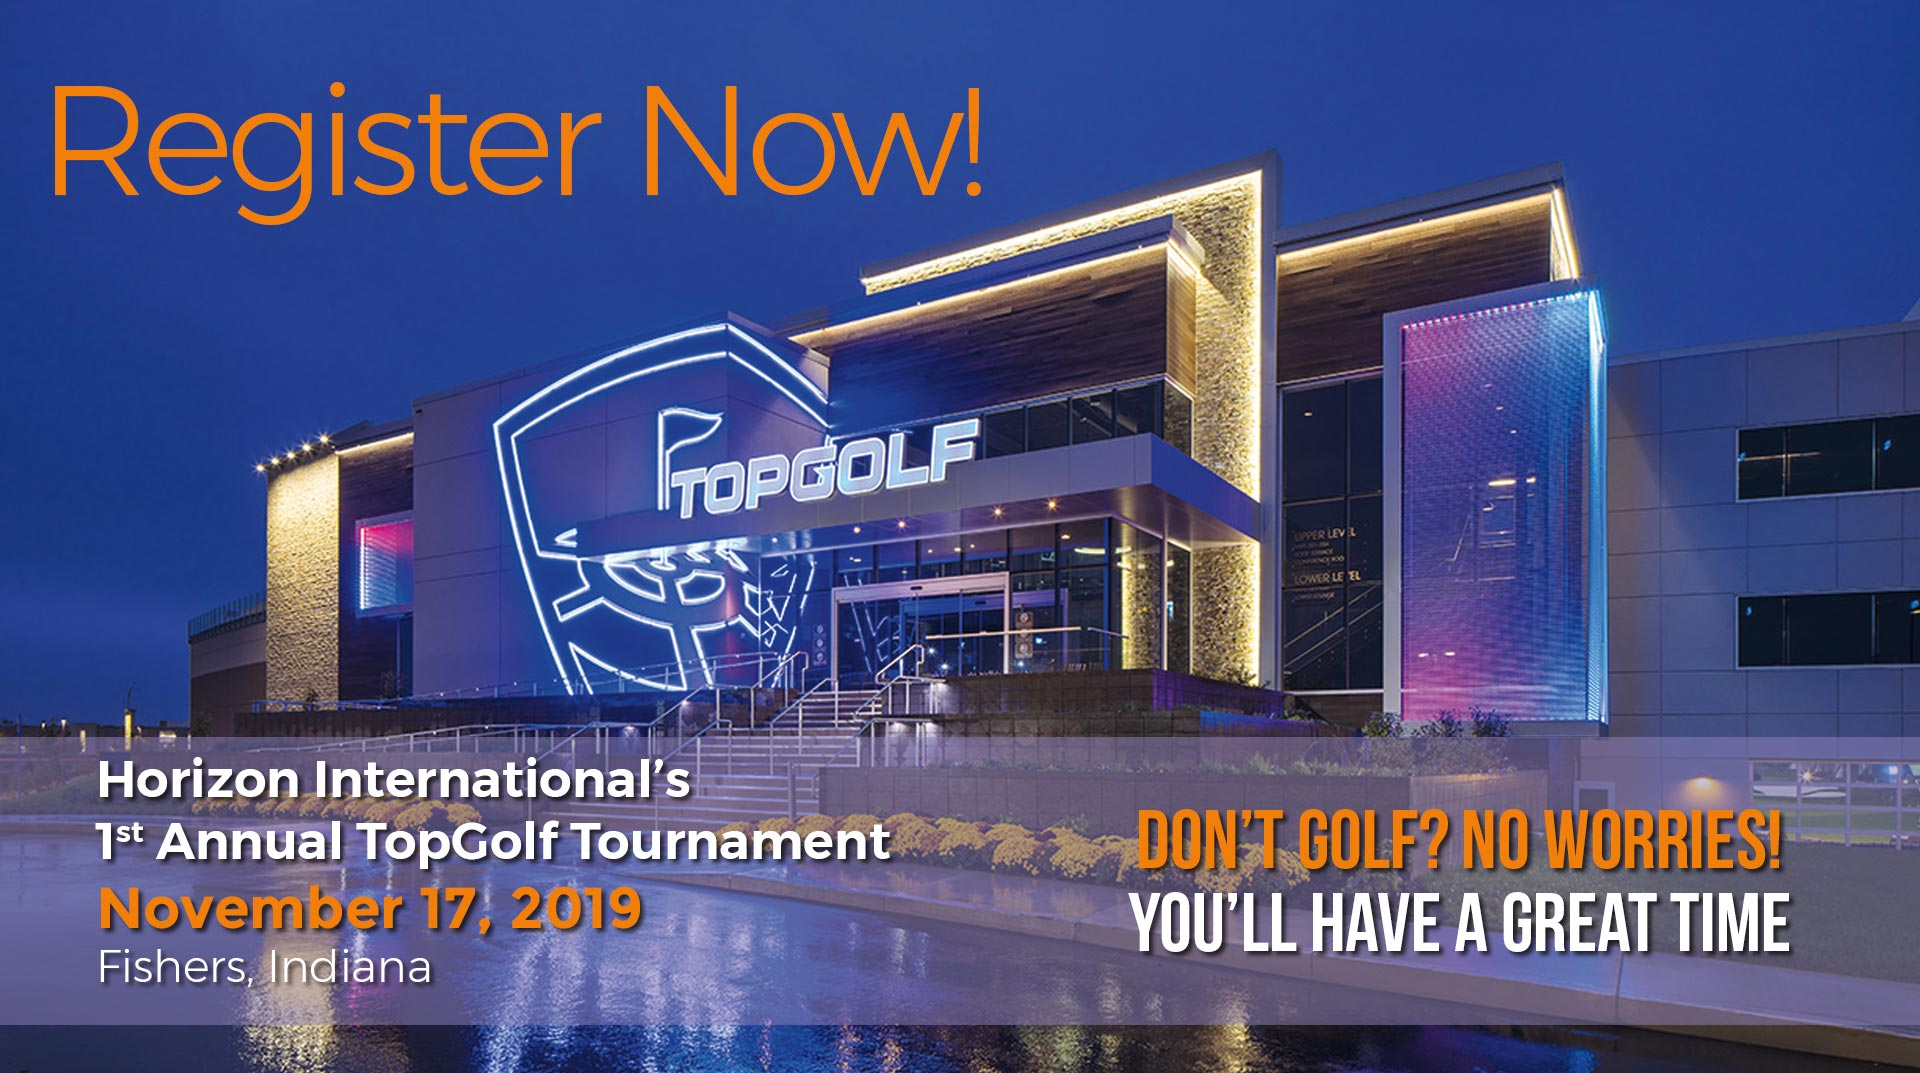 TopGolf Registration